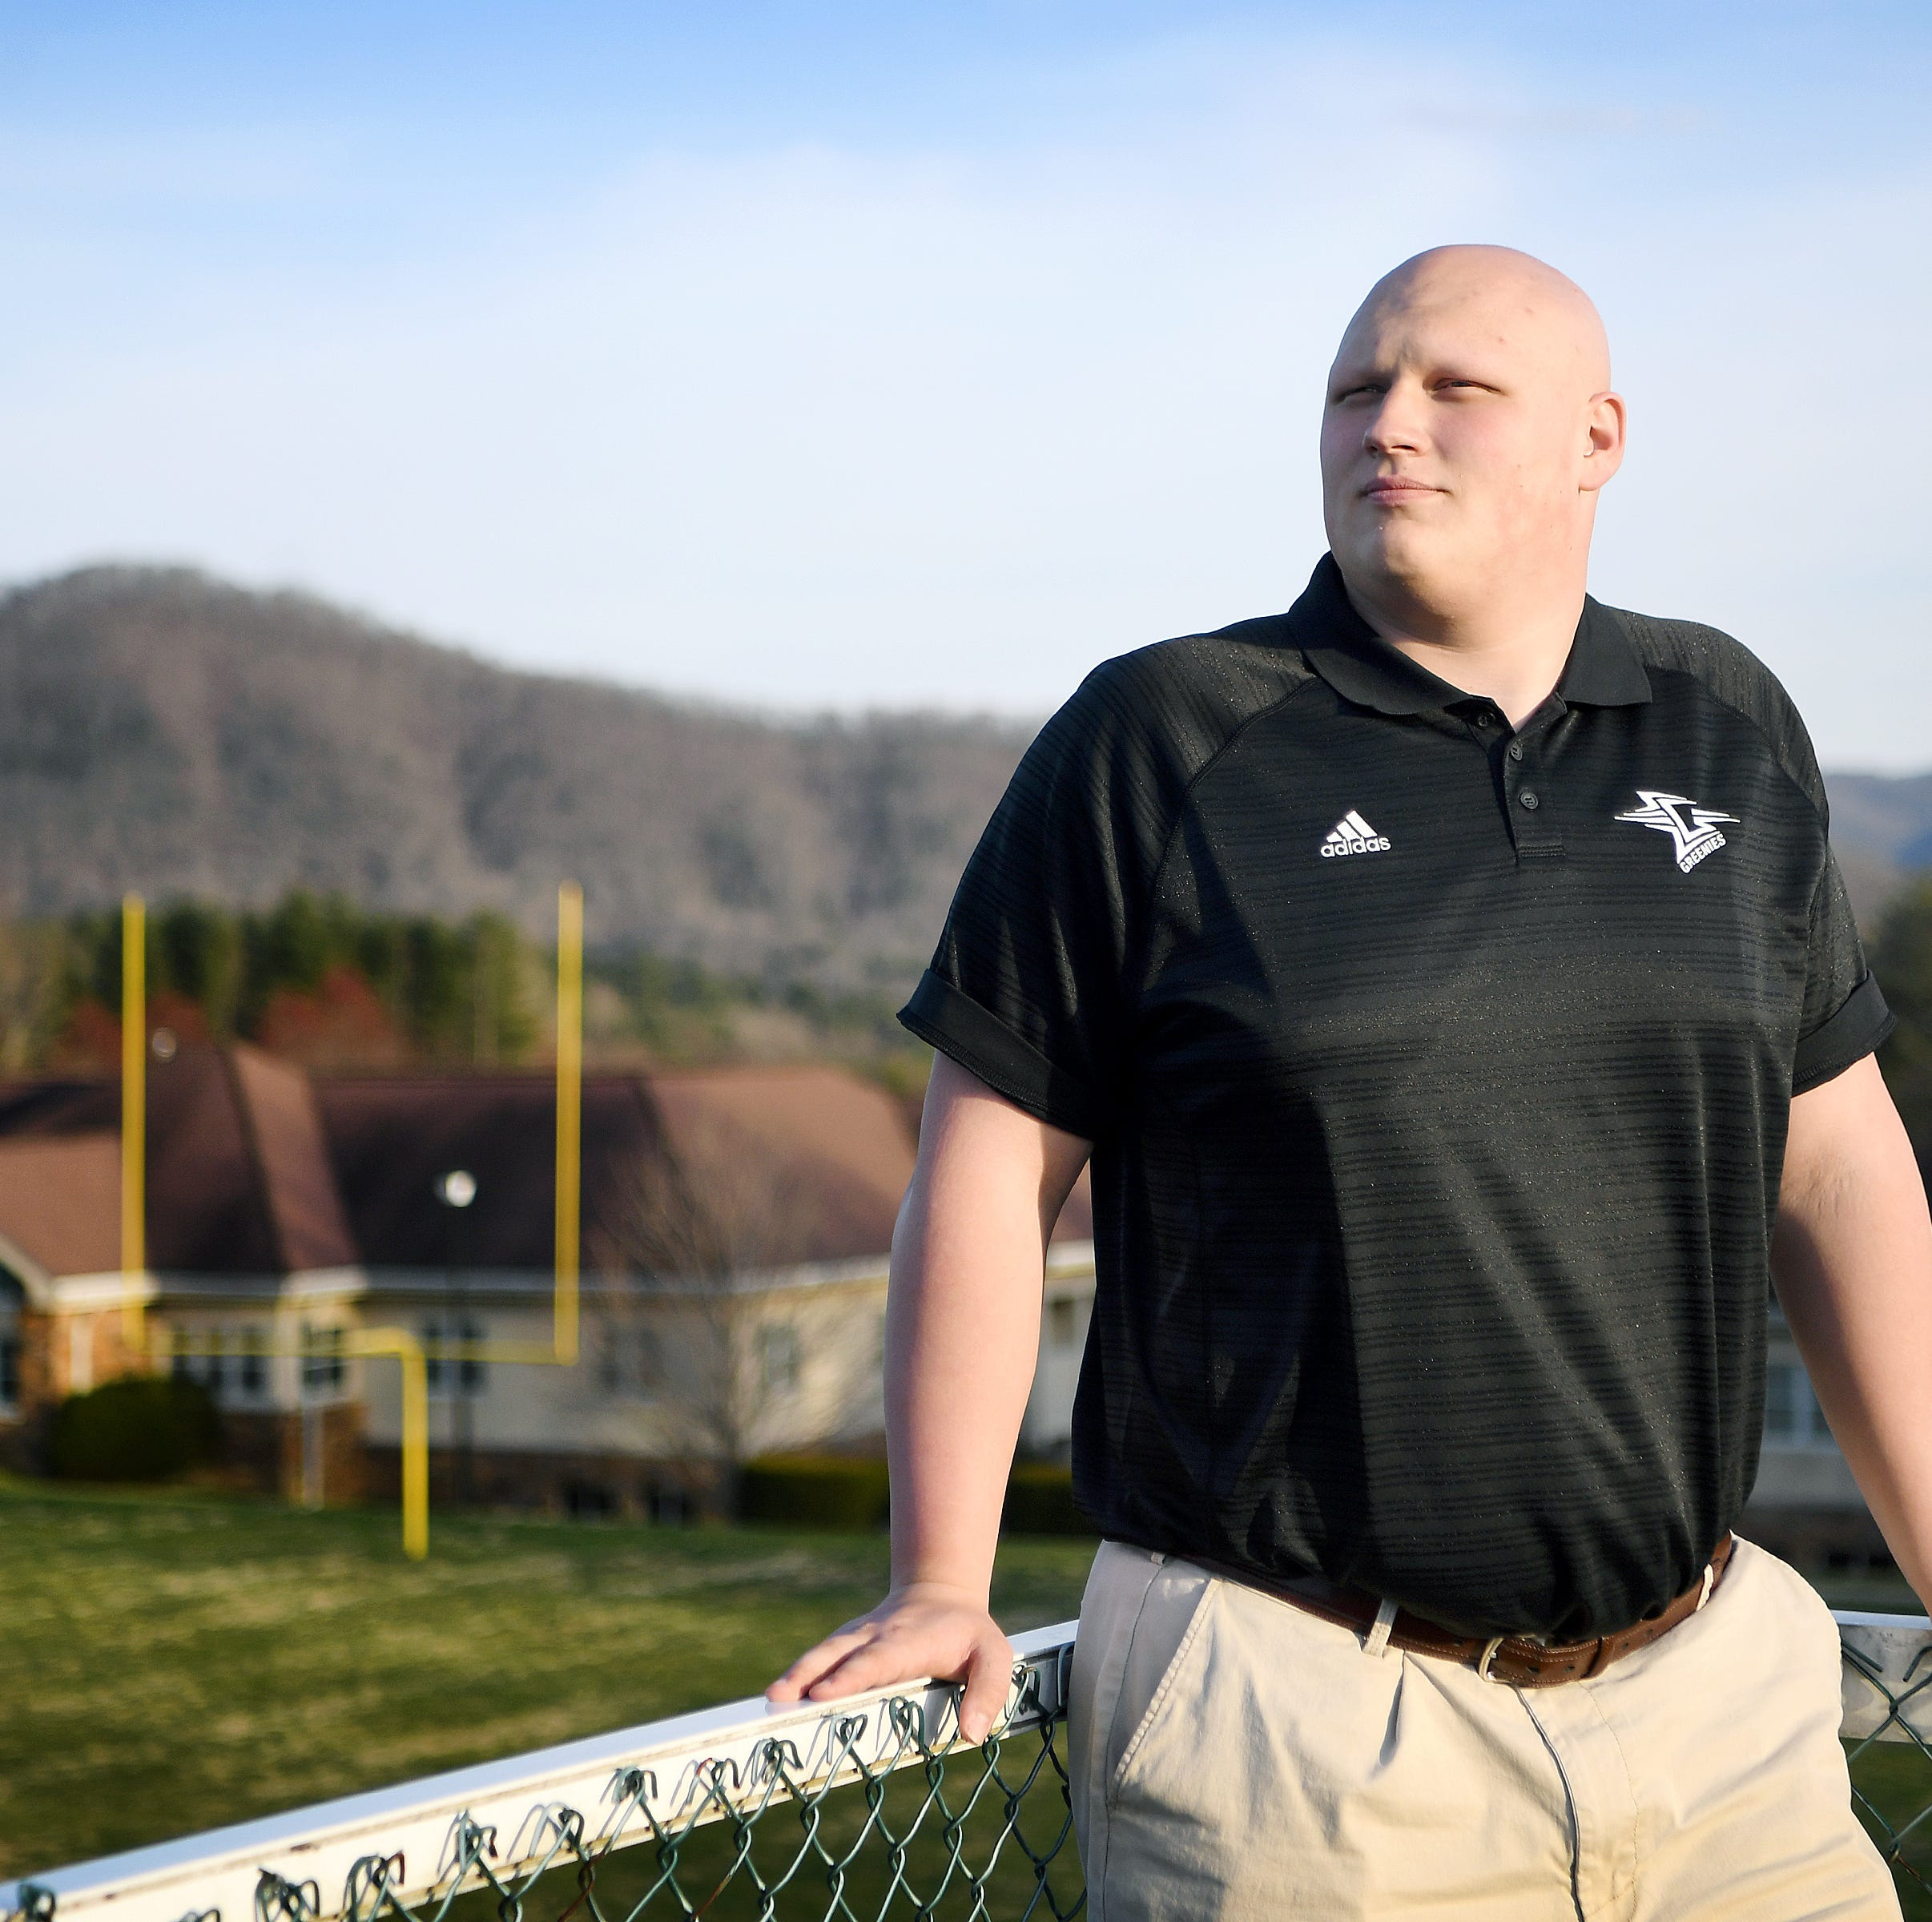 Christ School lineman's journey with disease prepares him for bright future